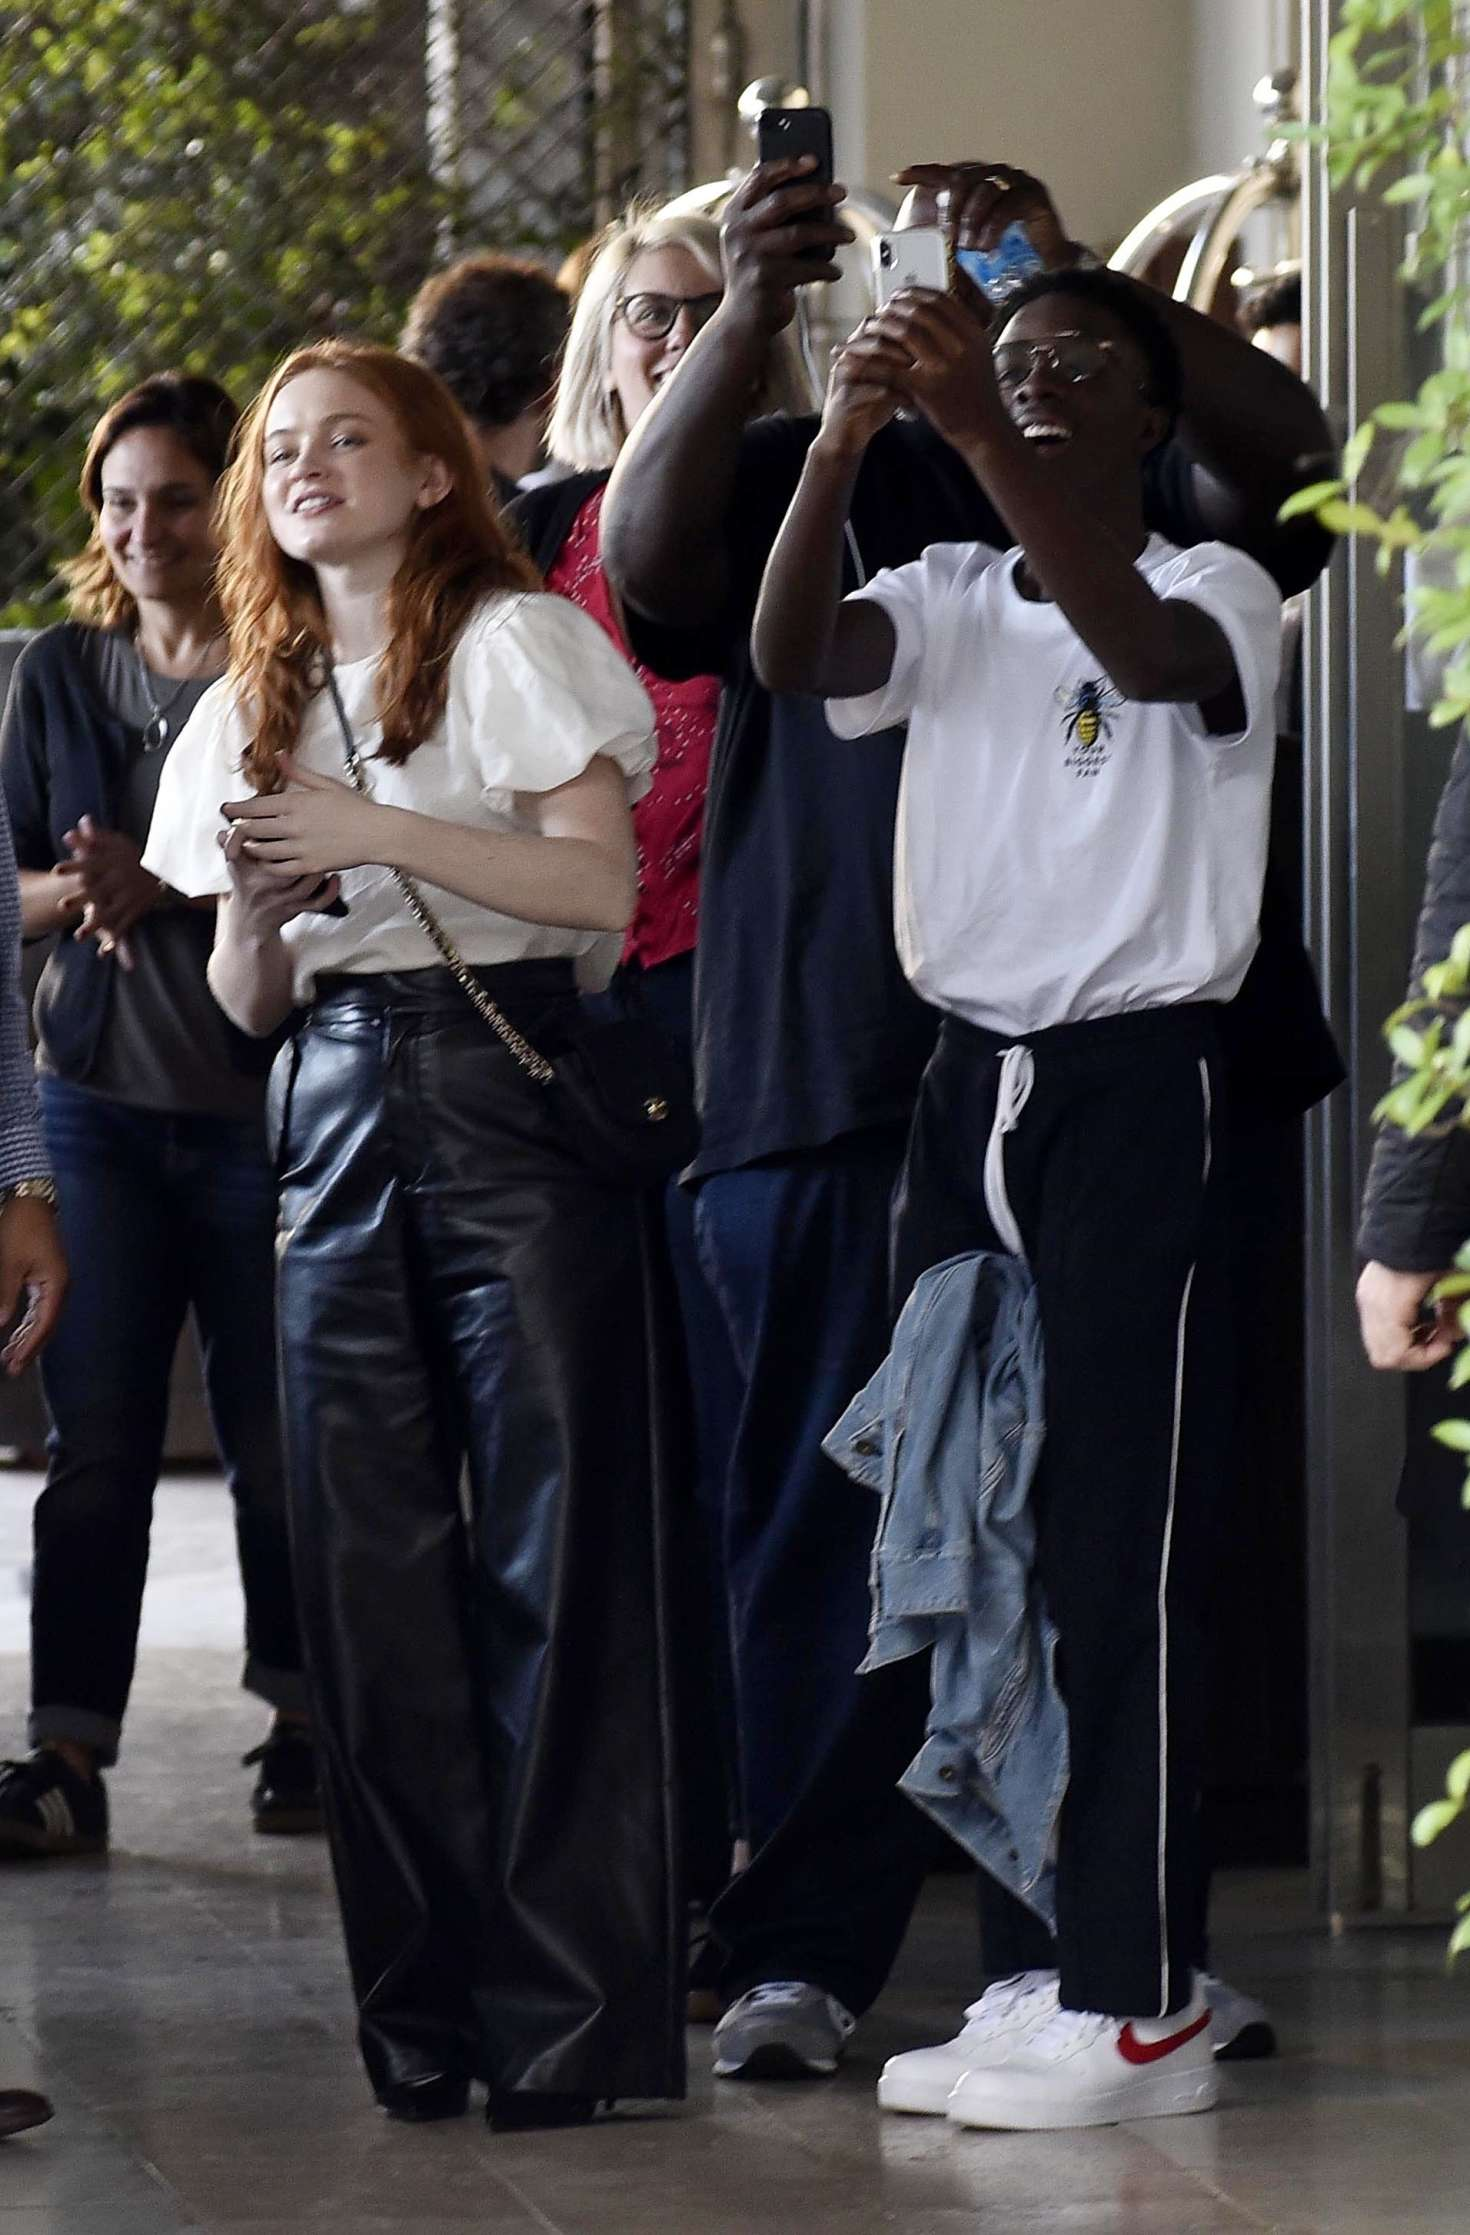 Sadie Sink 2018 : Sadie Sink at Four Seasons Hotel -02